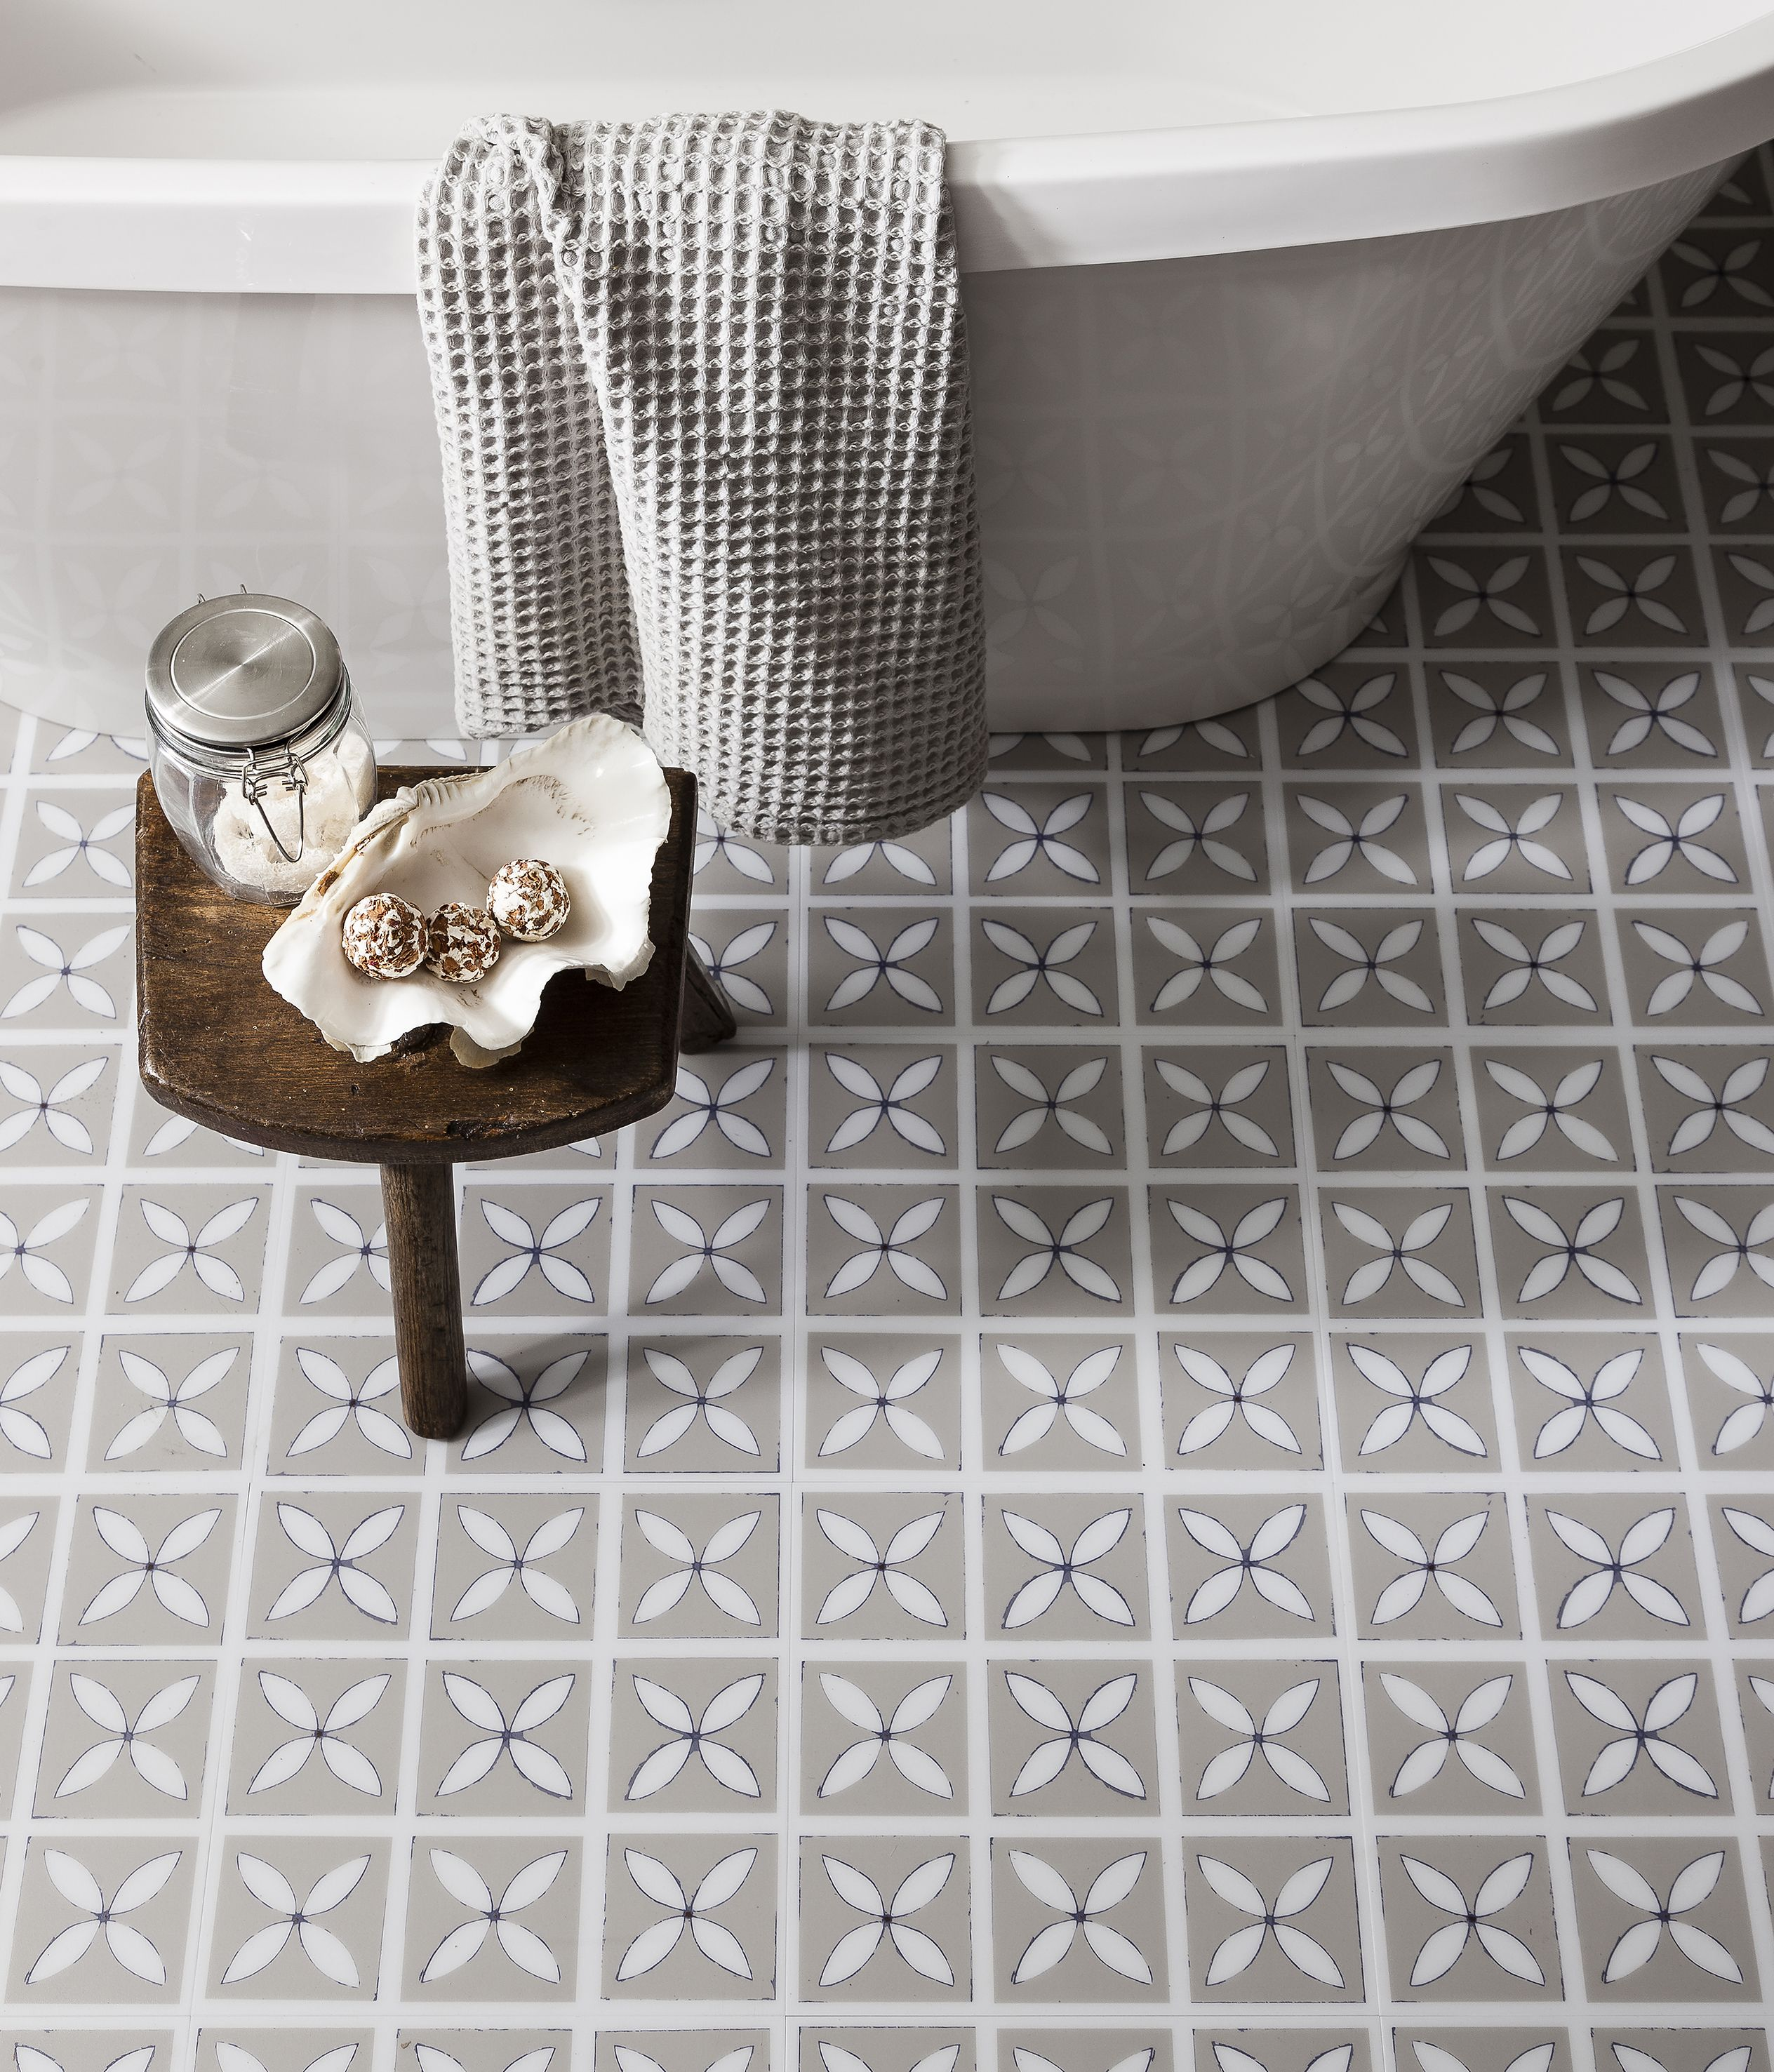 Vinyls, Lowes and Vinyl flooring on Pinterest - ^